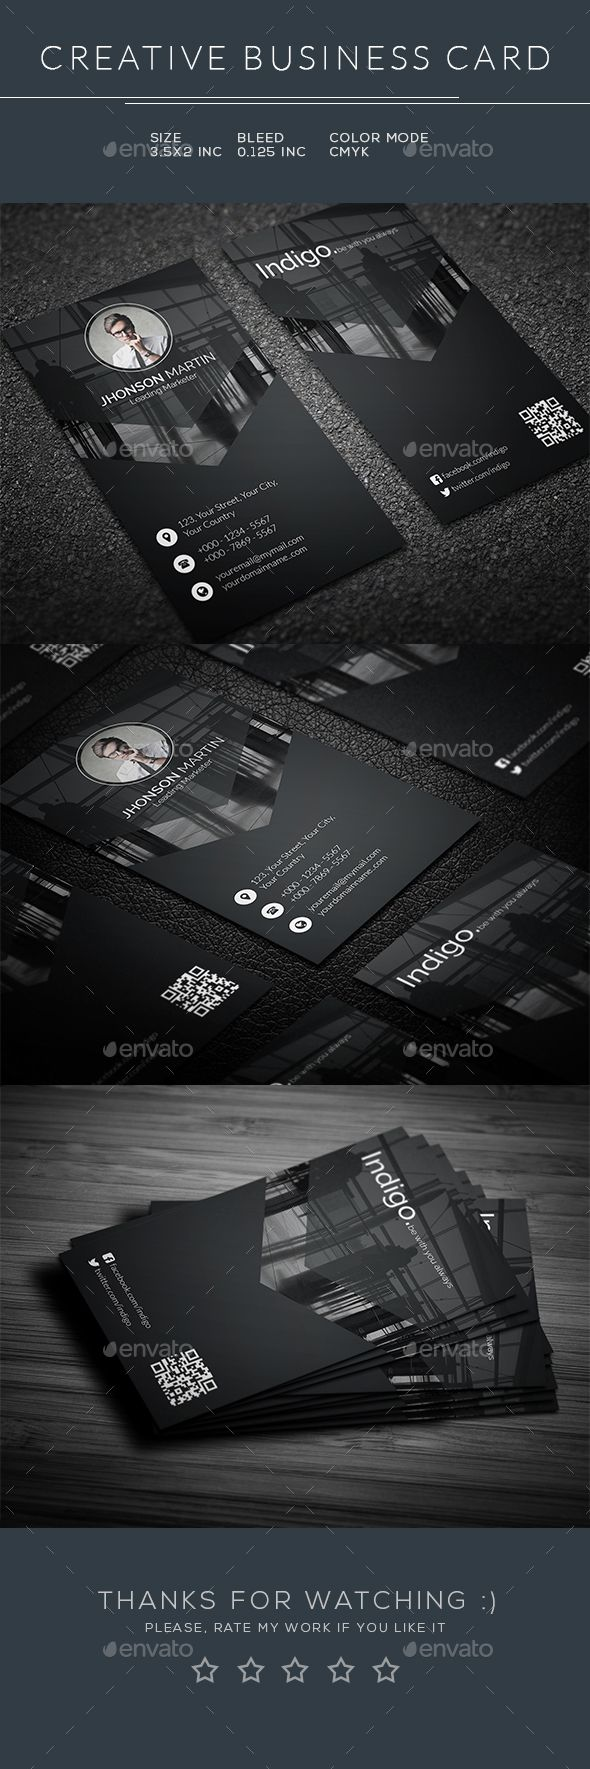 11 best business cards images on pinterest fonts brushes and 11 best business cards images on pinterest fonts brushes and business cards magicingreecefo Images